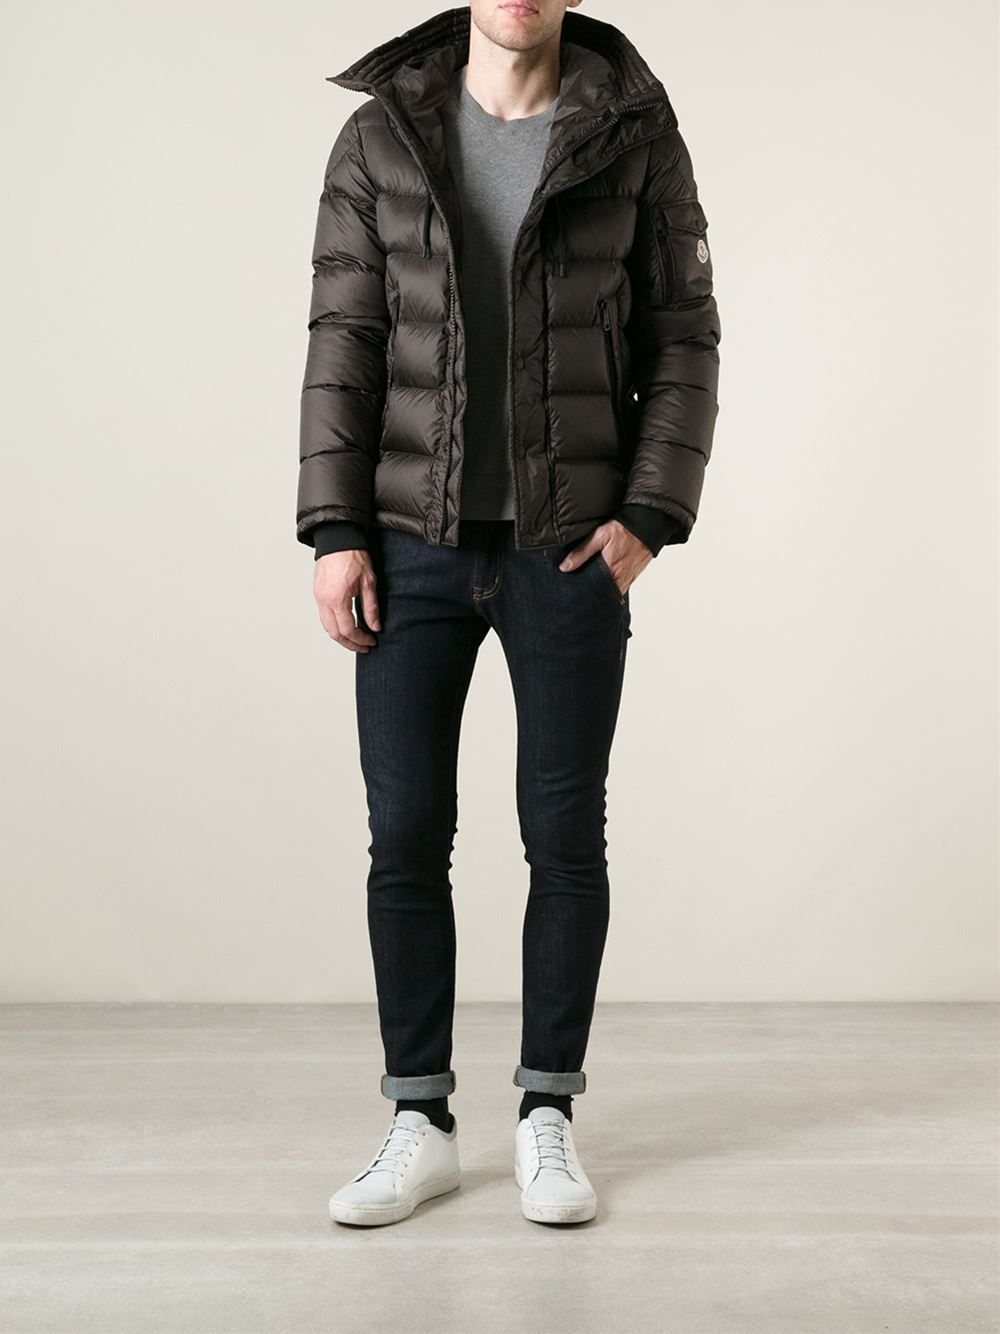 Moncler Basile Padded Jacket in Brown for Men